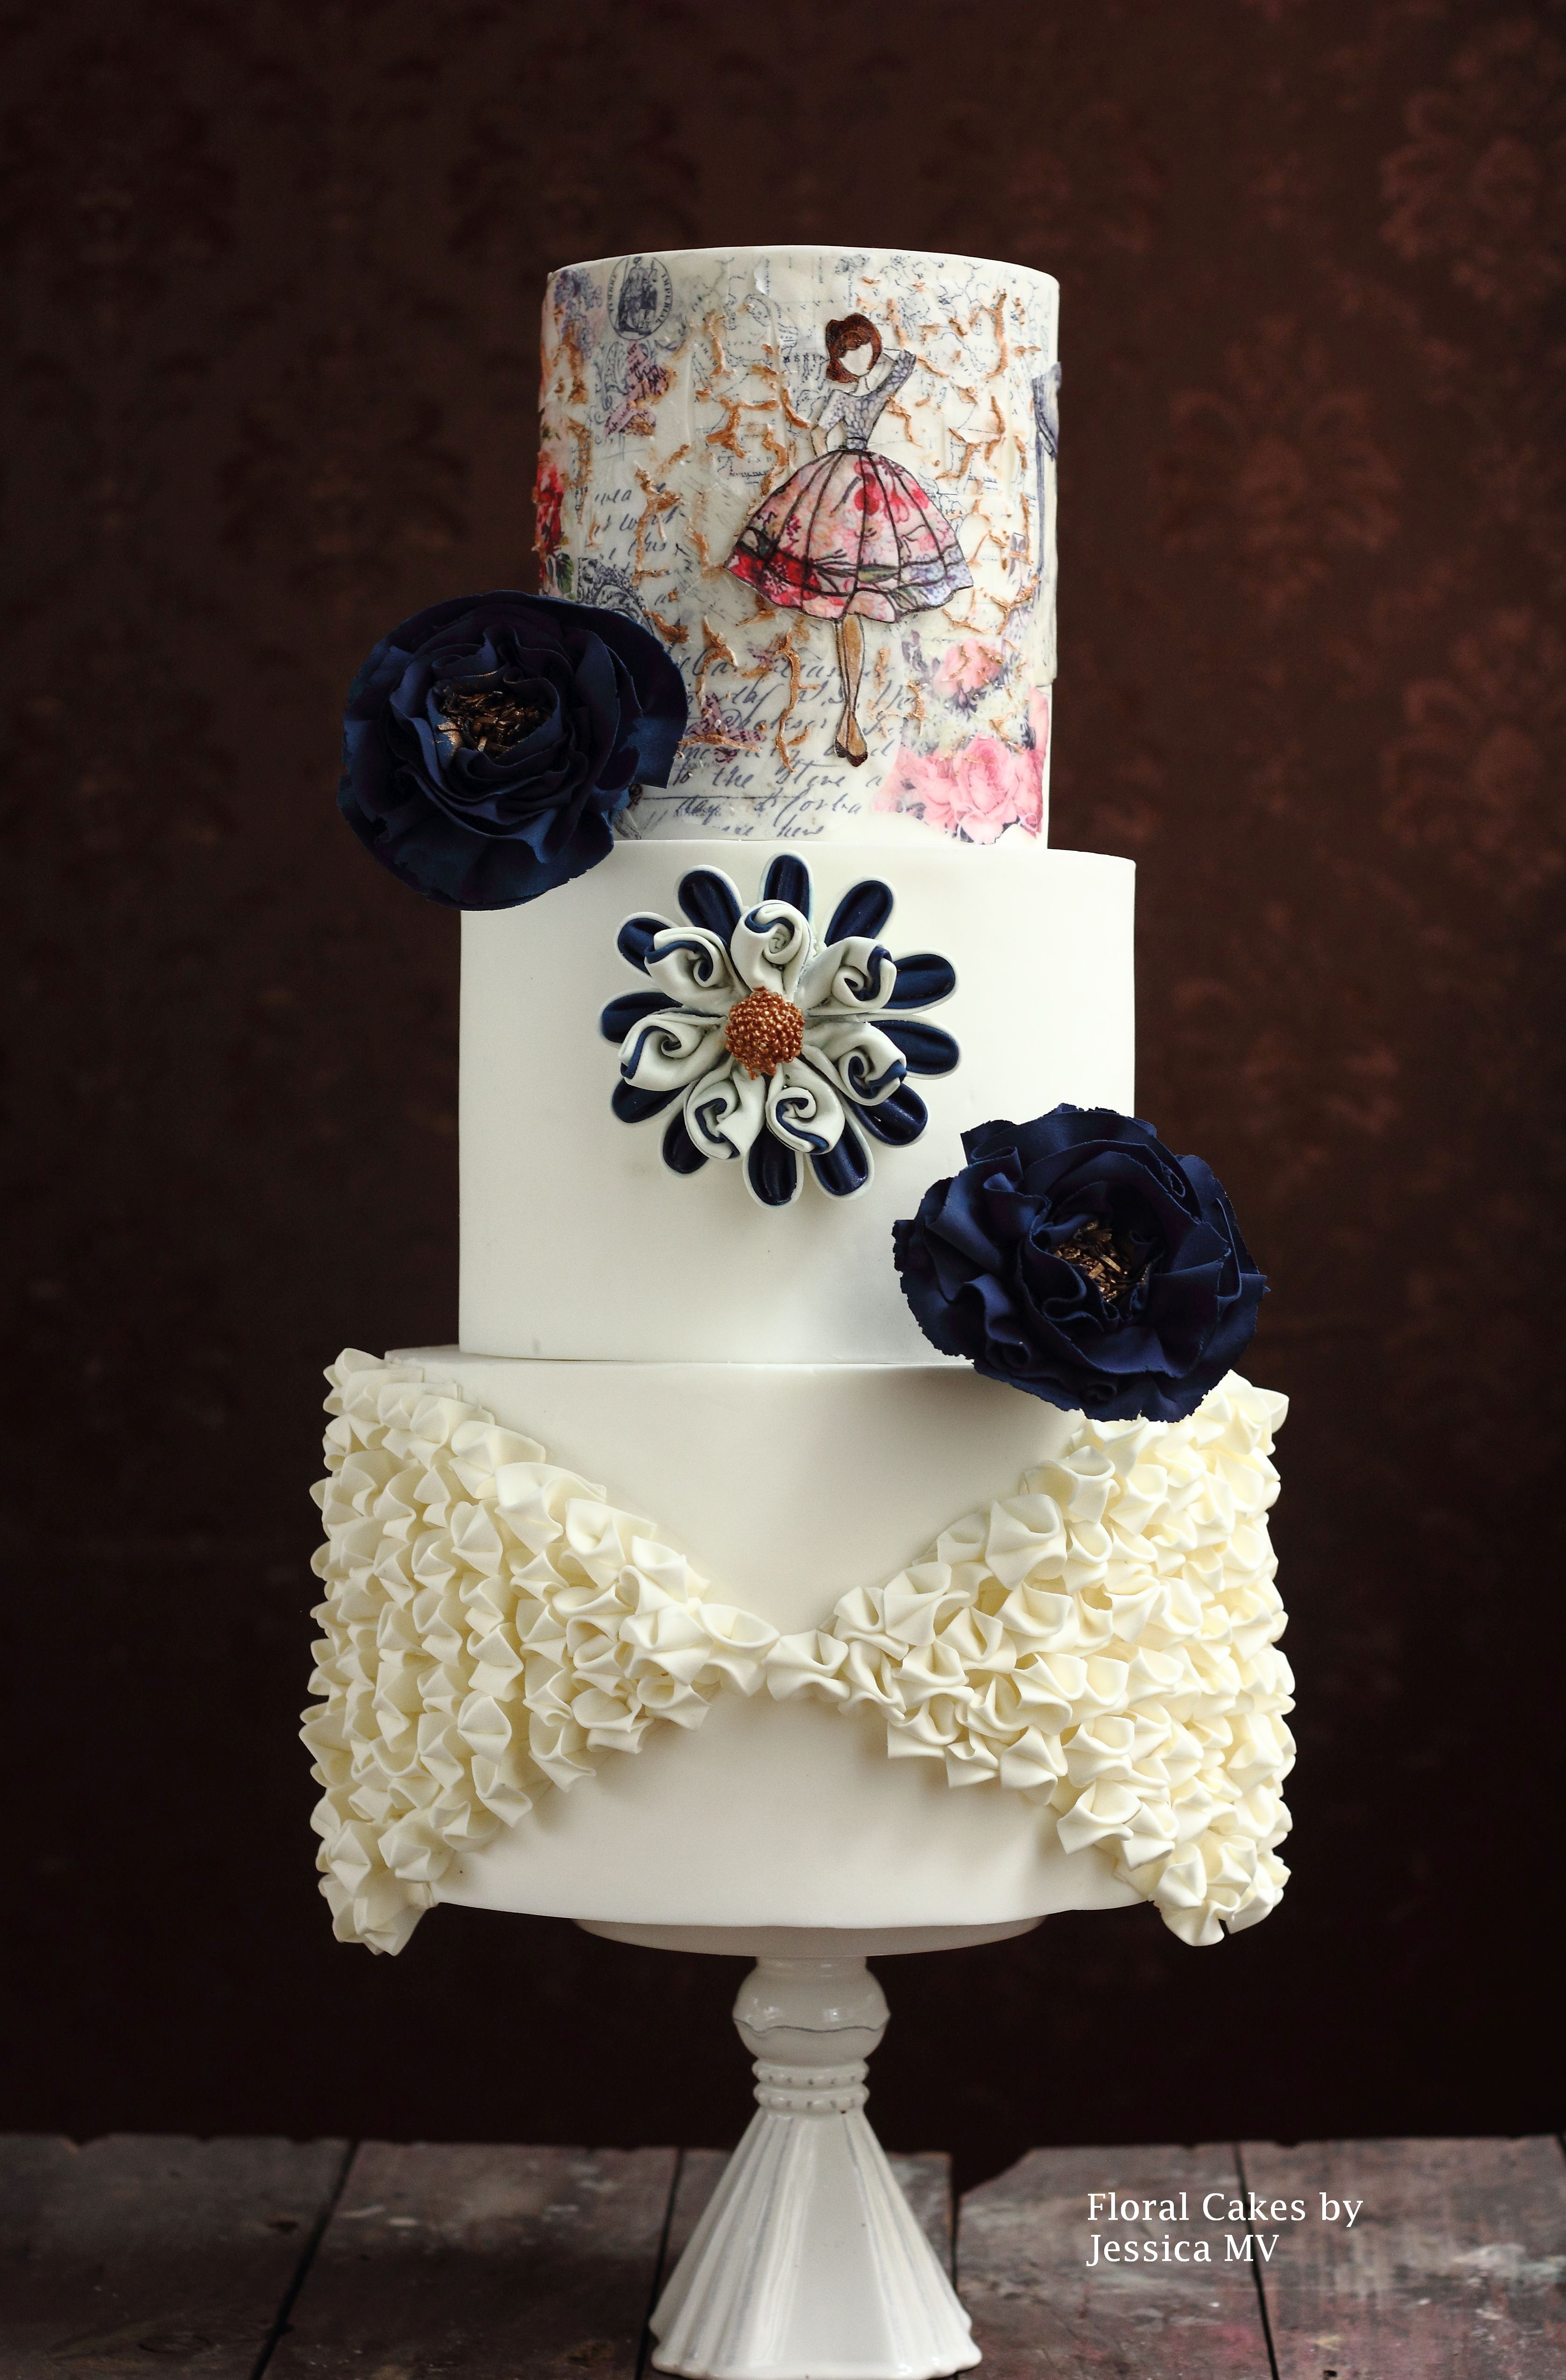 White with criss cross ruffles and a hand painted design